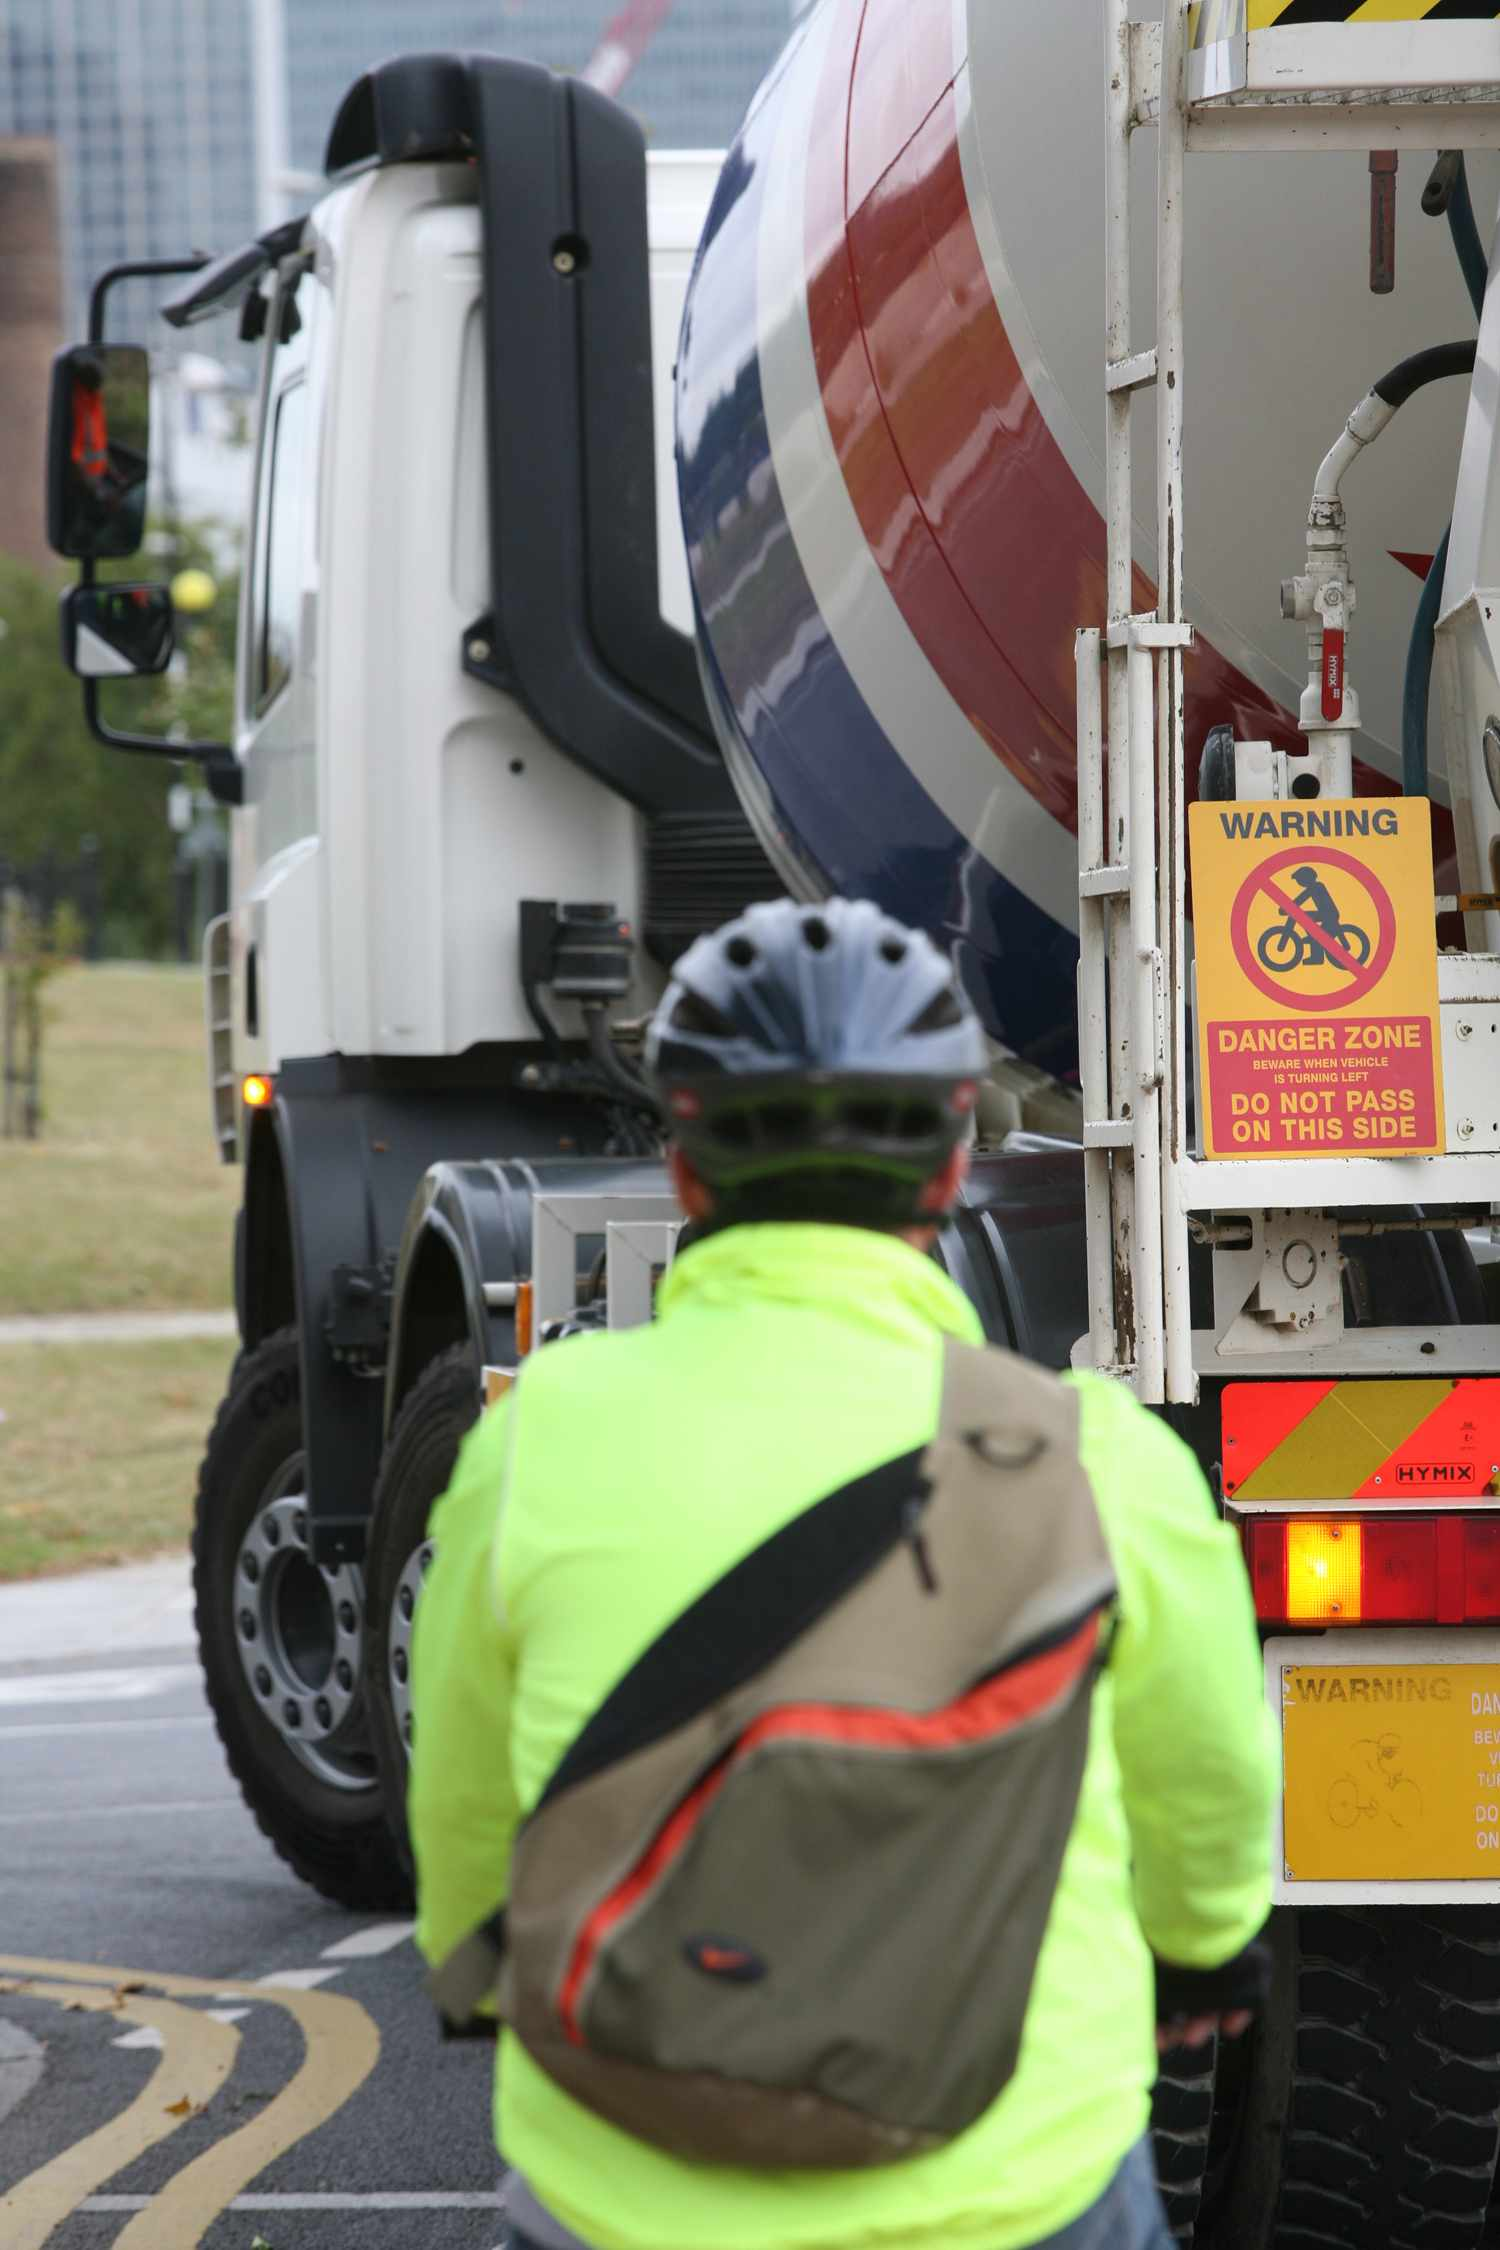 CEMEX are doing all they can to make cycling safer